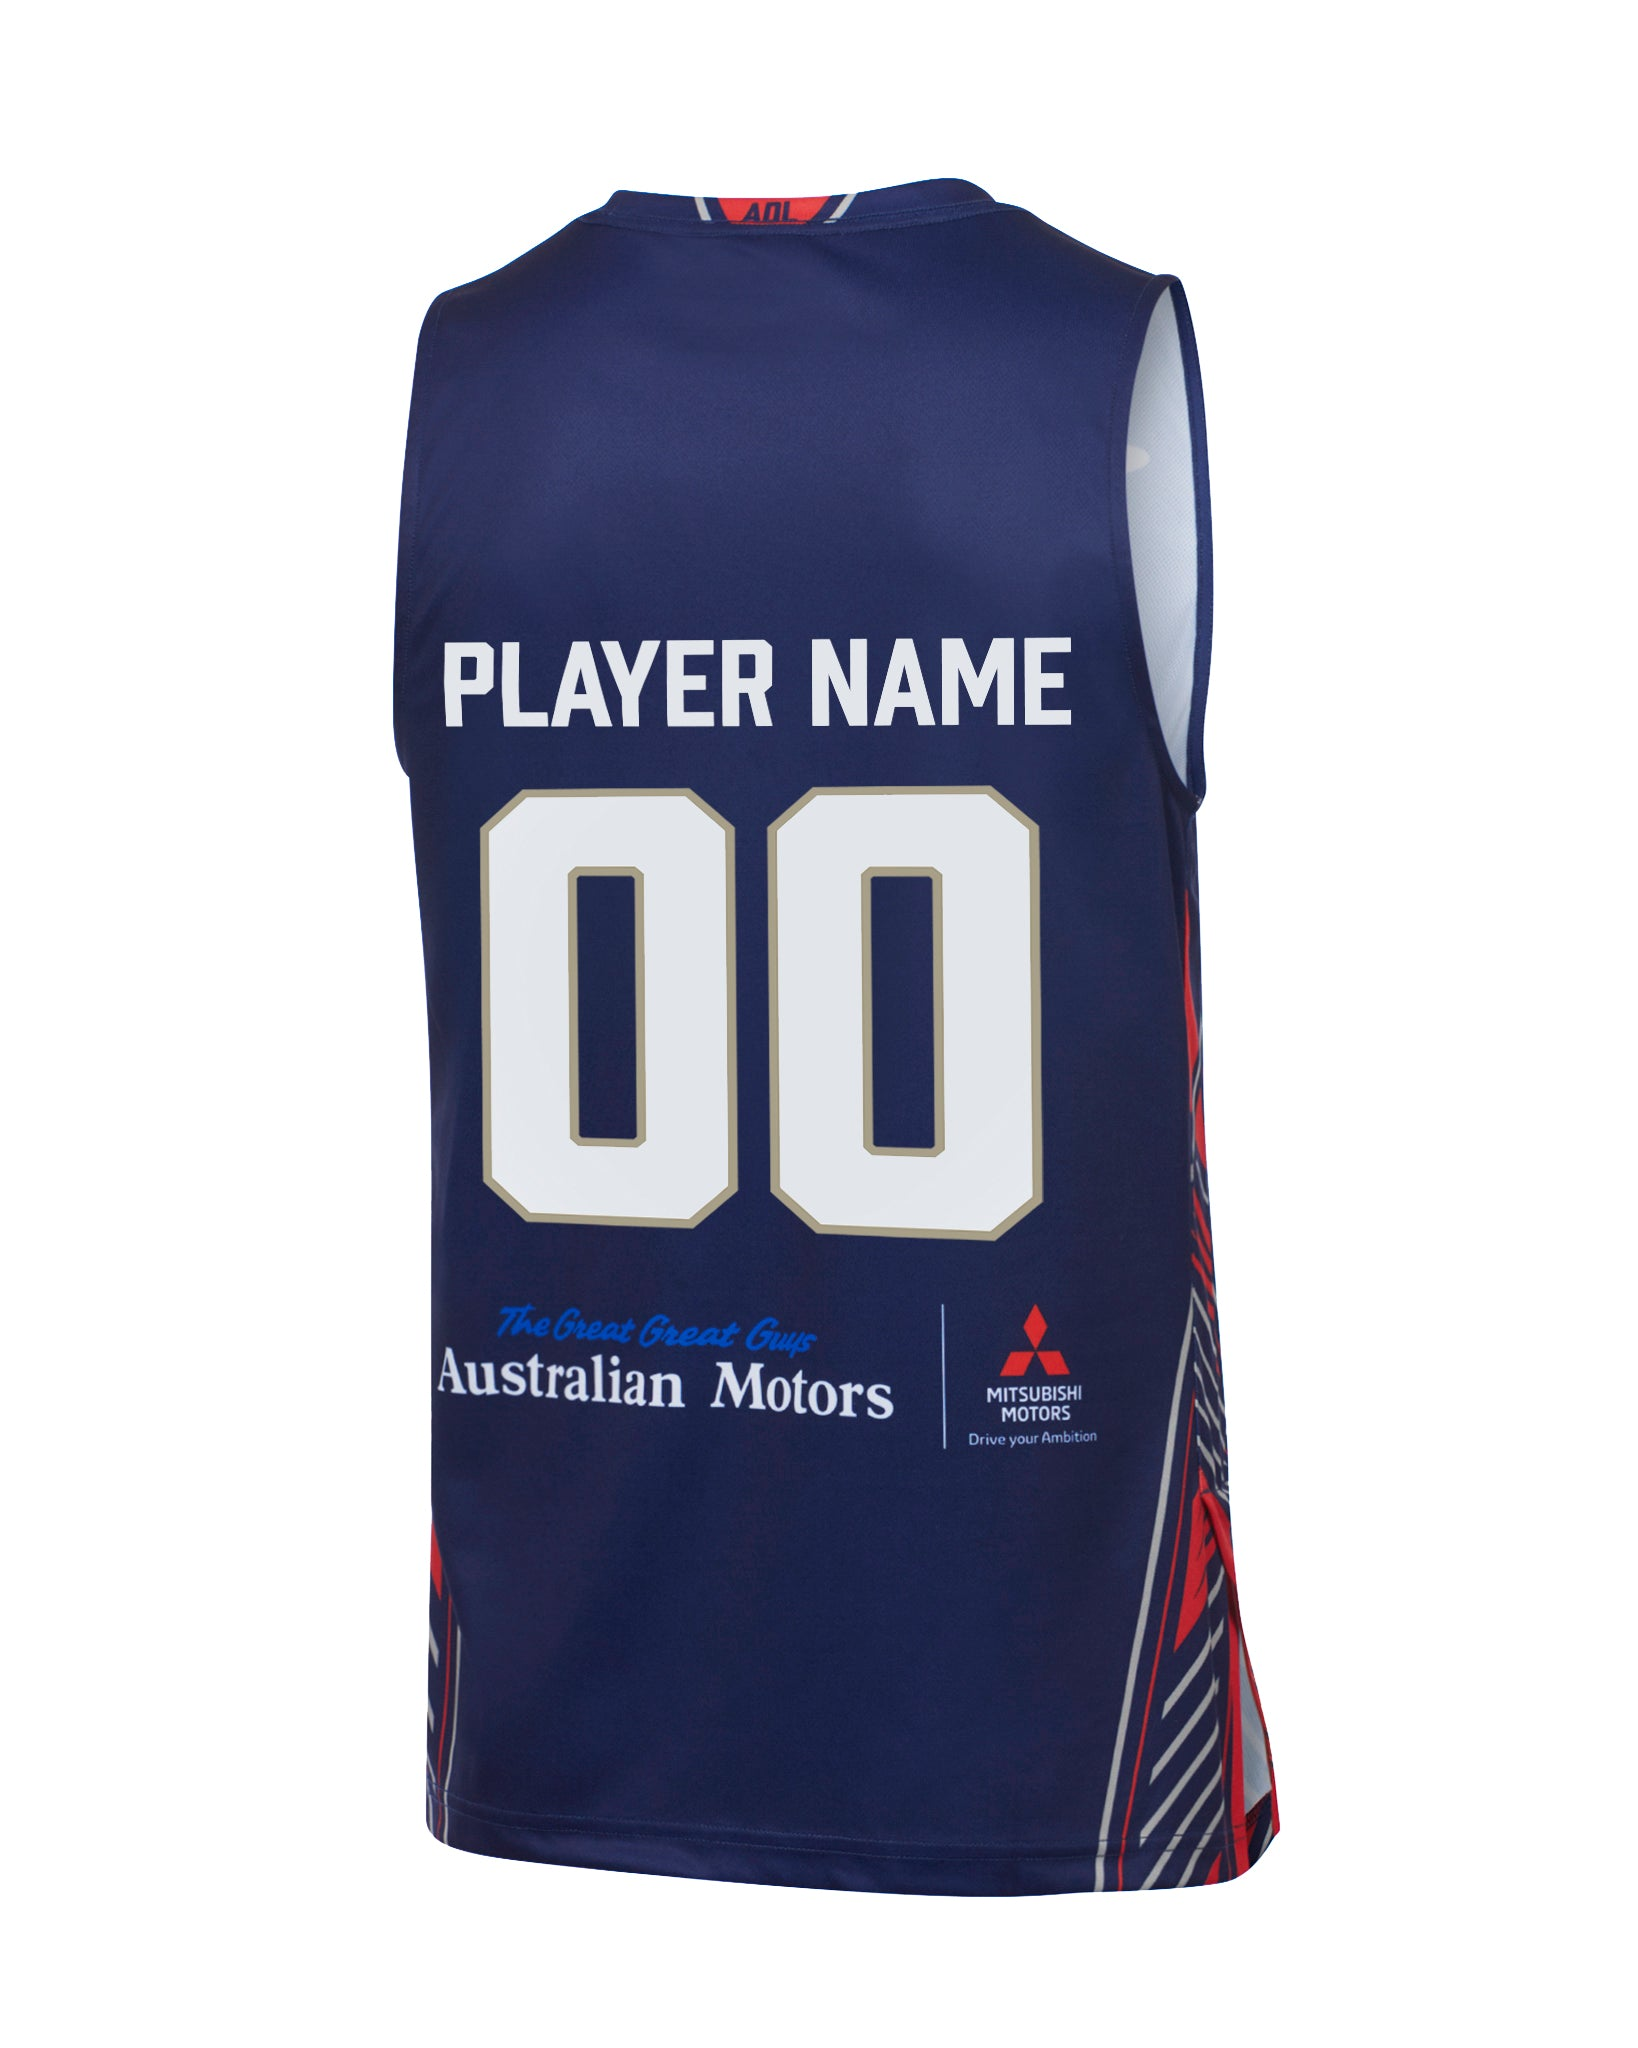 Adelaide 36ers 19/20 Authentic Home Jersey - Other Players